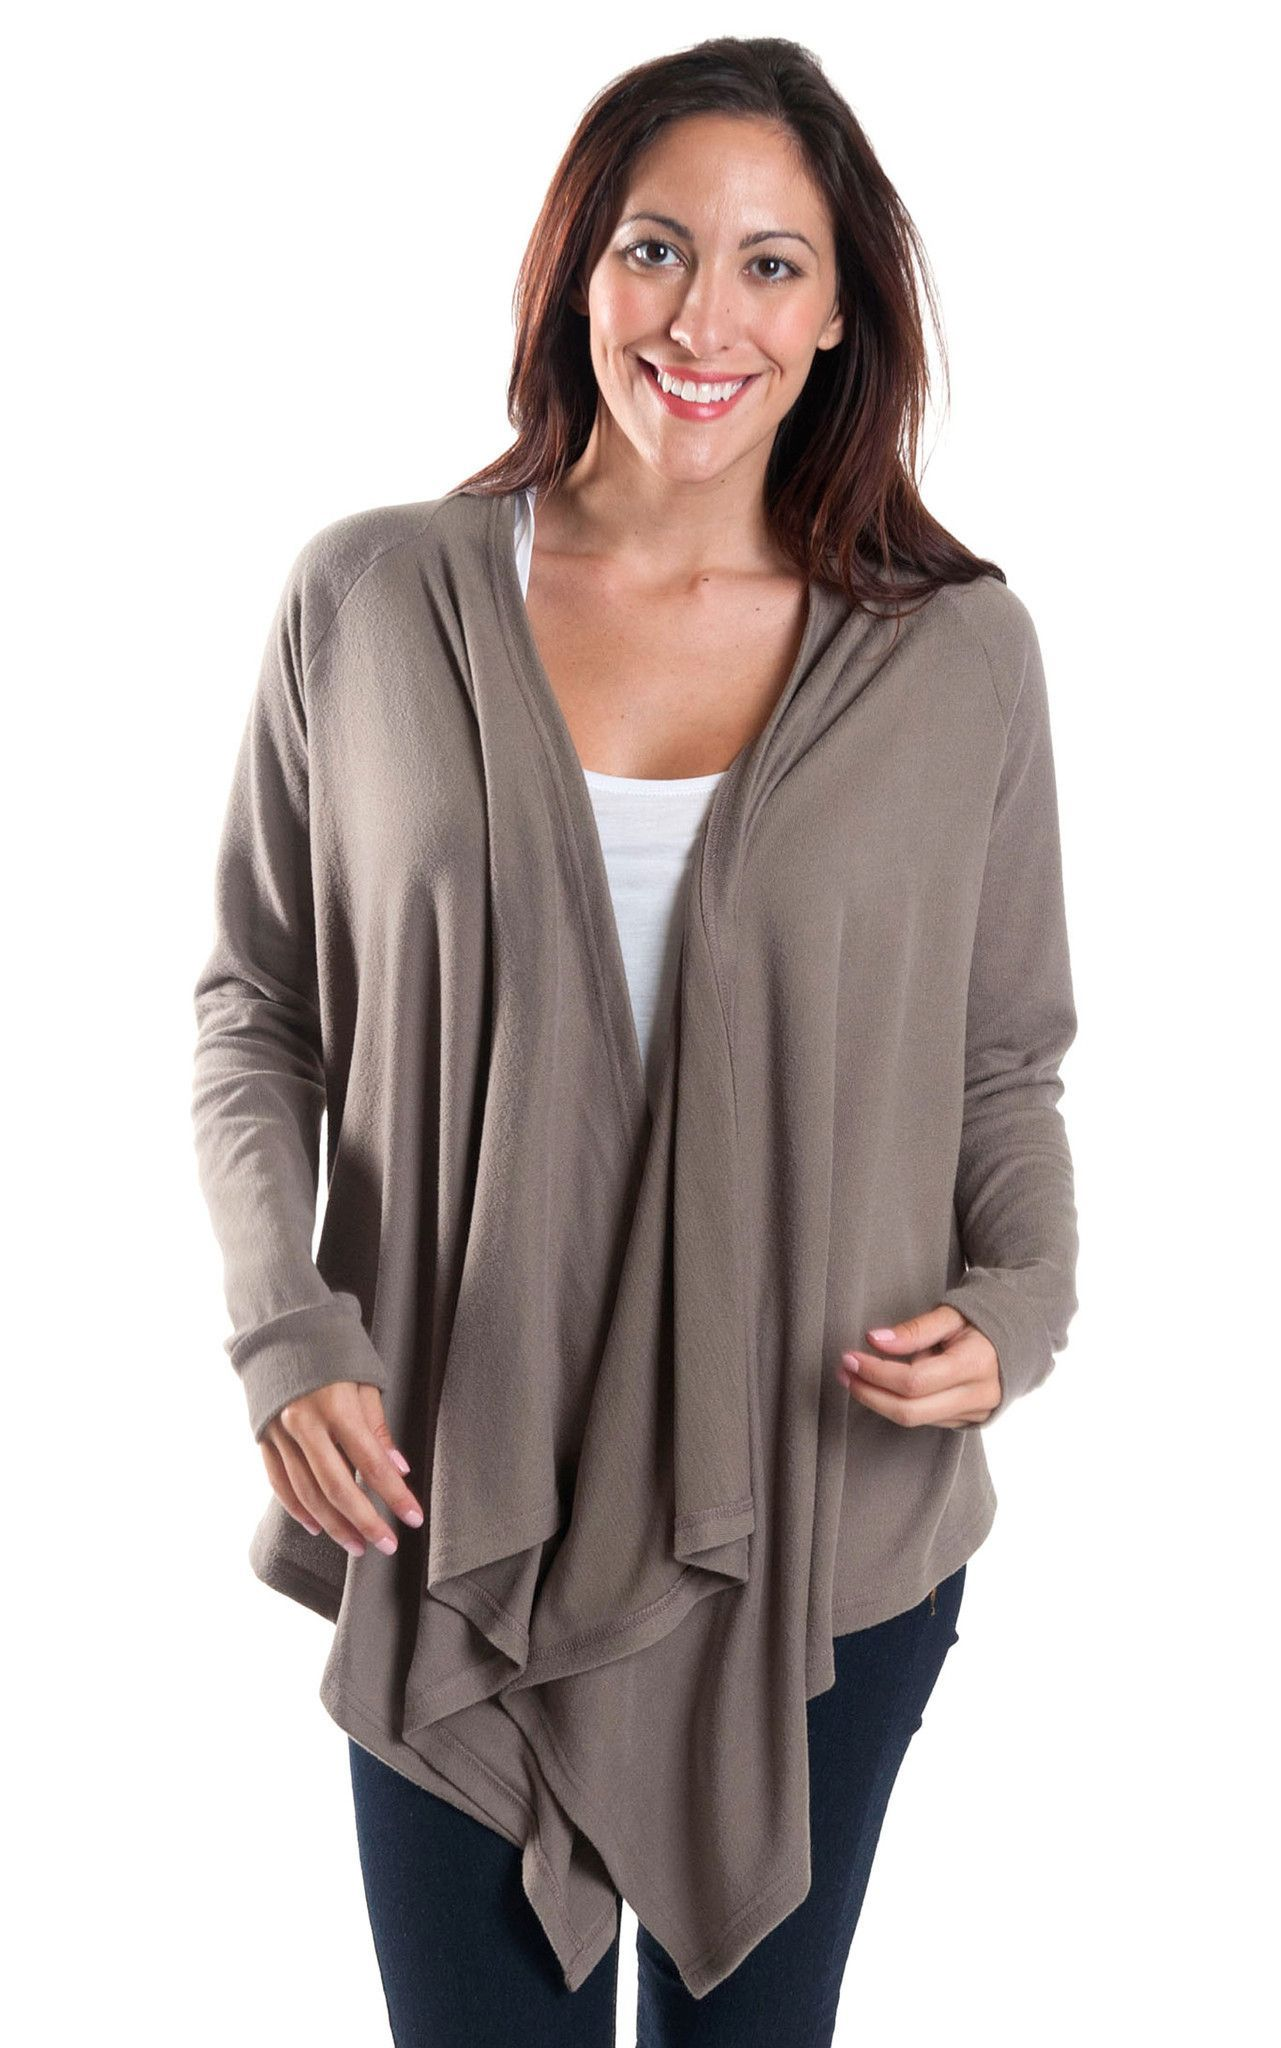 Taupe Claire Waterfall Sweater | Products | Pinterest | Products